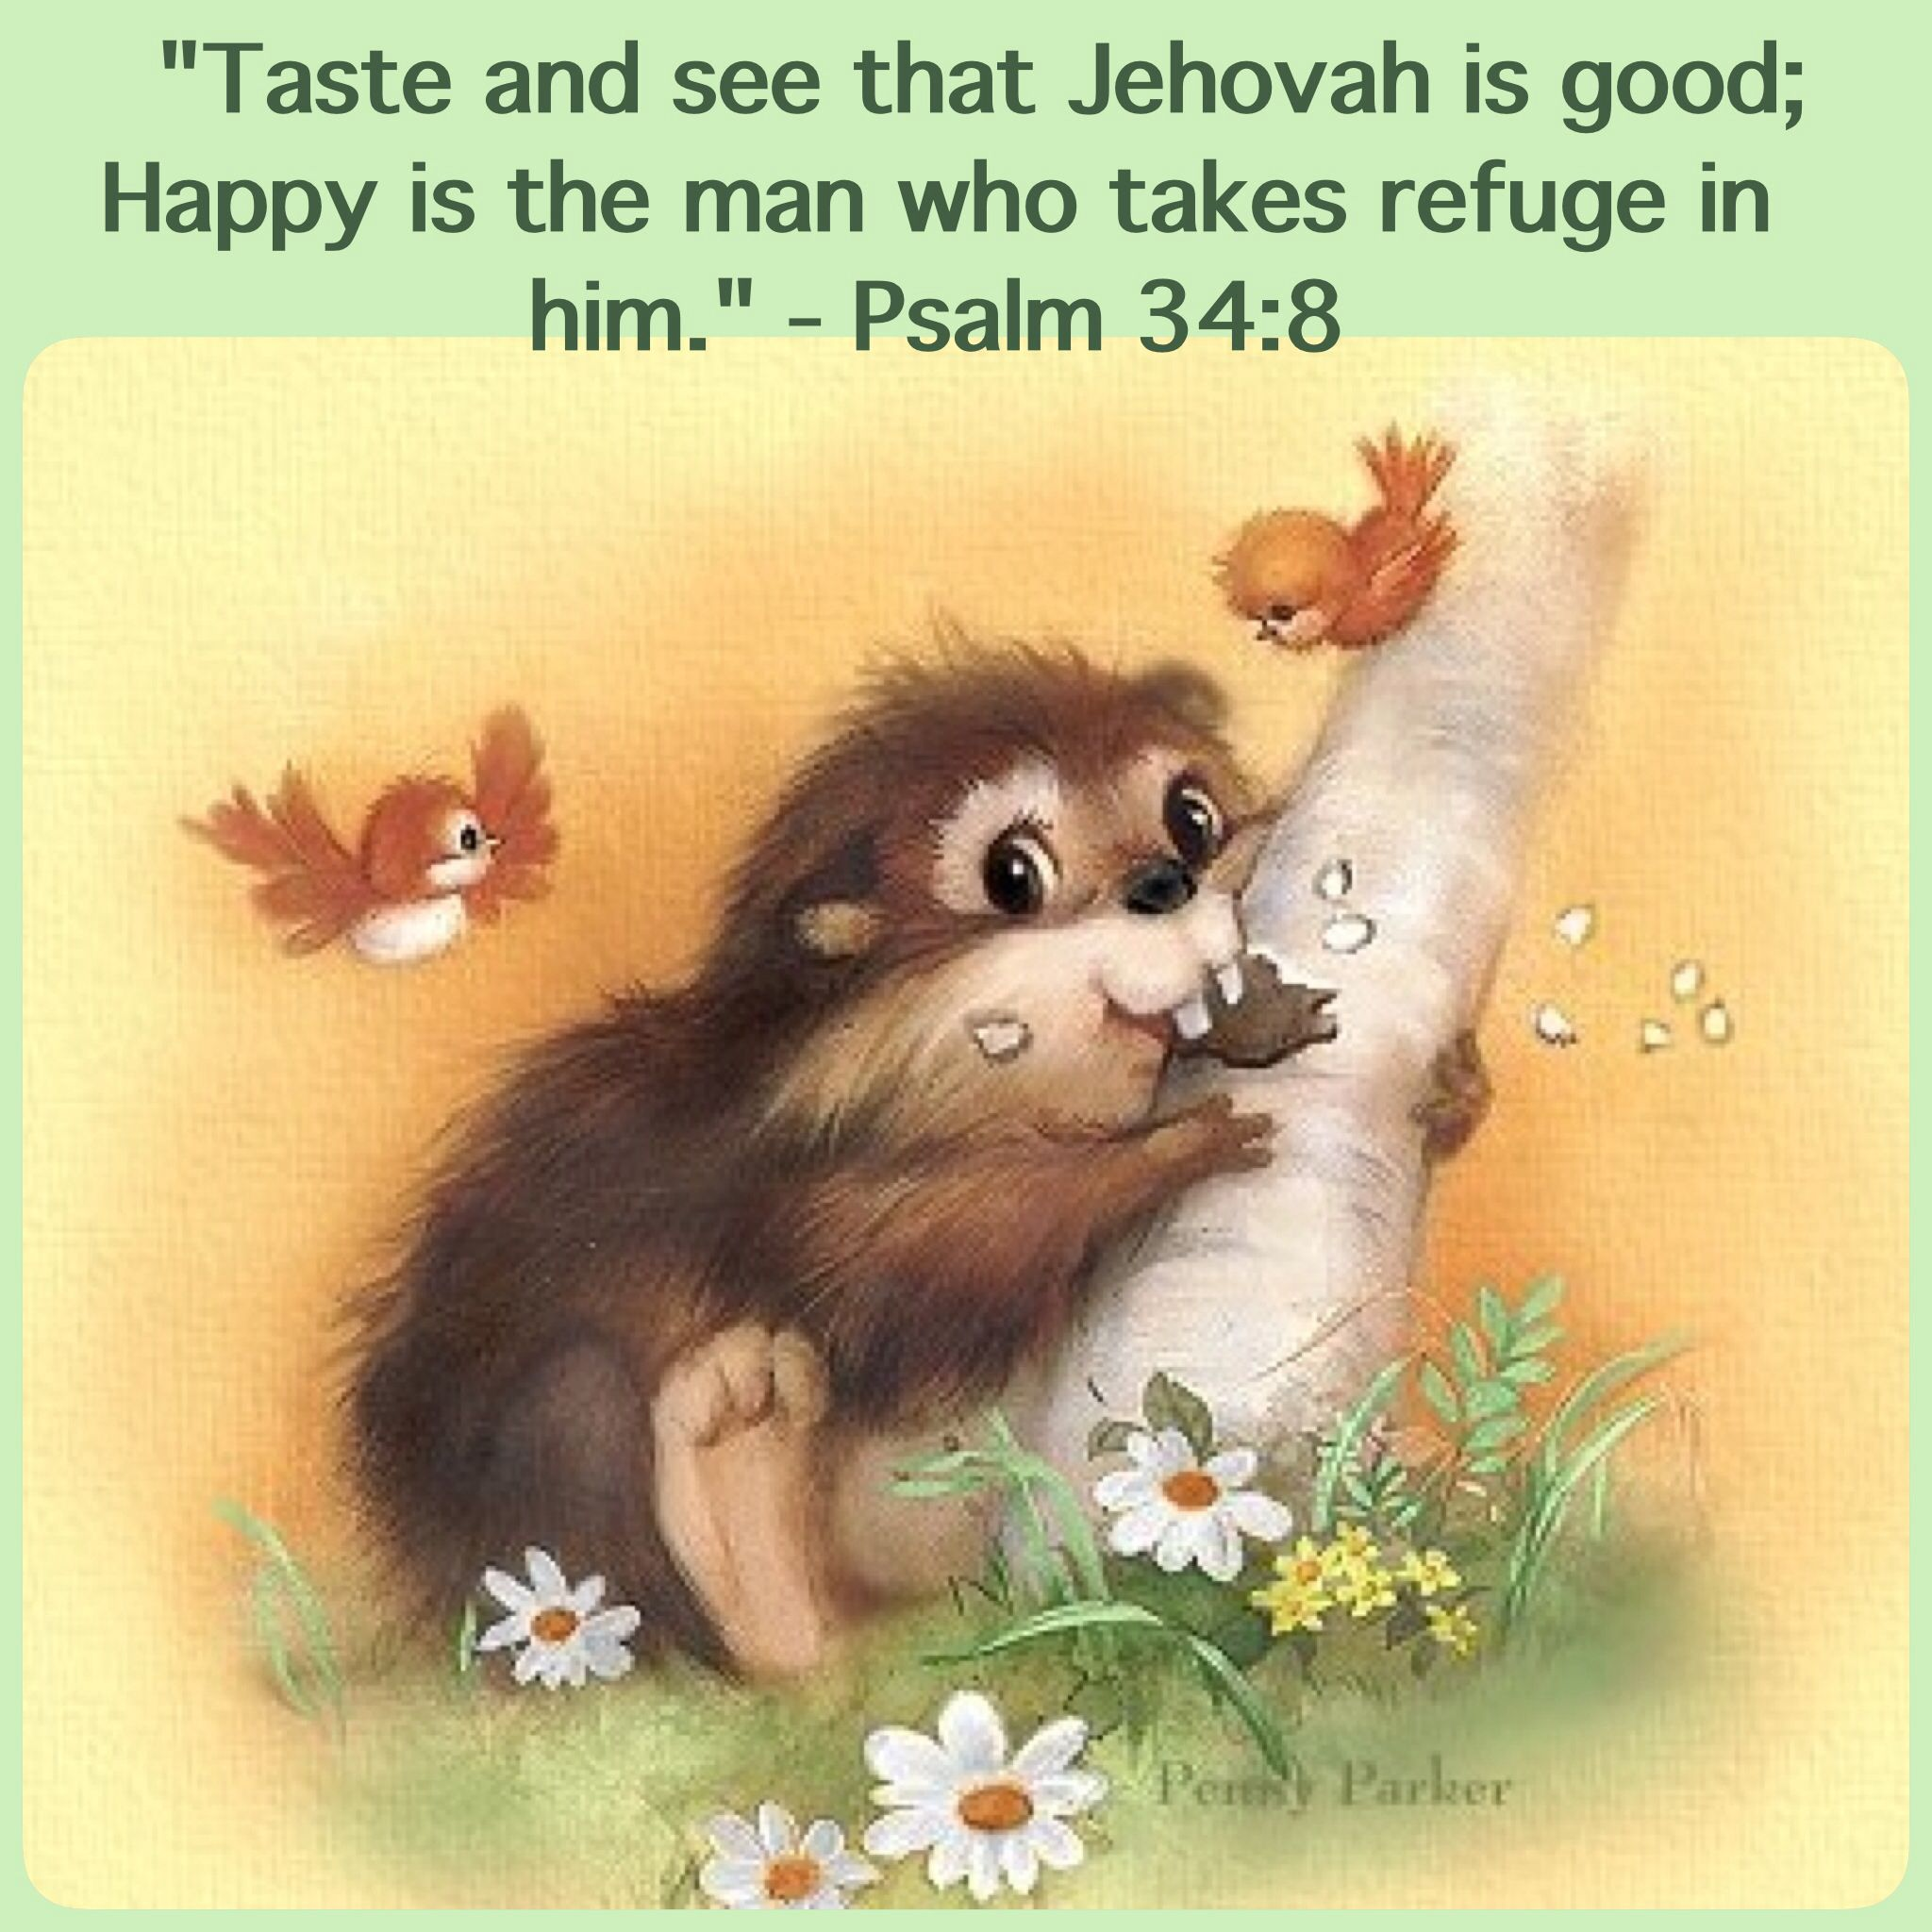 This has to be a personal effort. For me to appreciate Jehovah, I must taste for myself, but for you to appreciate you must taste for yourself. Our tastes are different. But even the smallest nibble is enough for us to appreciate that Jehovah is wonderful. And that the best is yet to come! To learn more visit JW.org please.